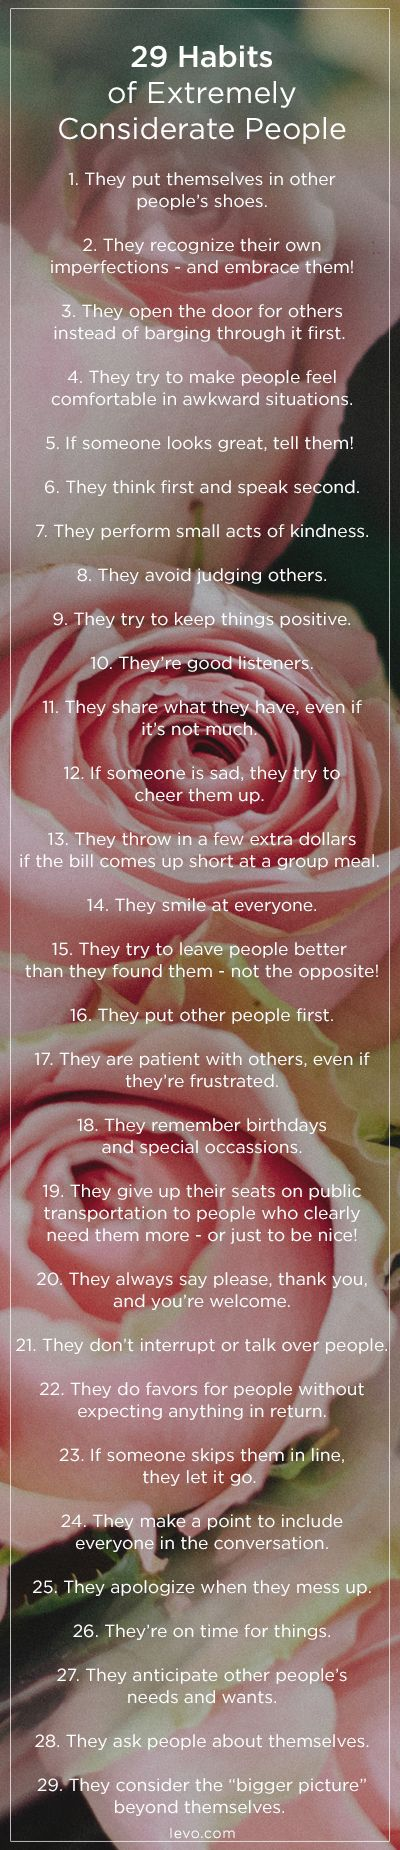 29 Habits of Extremely Considerate People www.levo.com